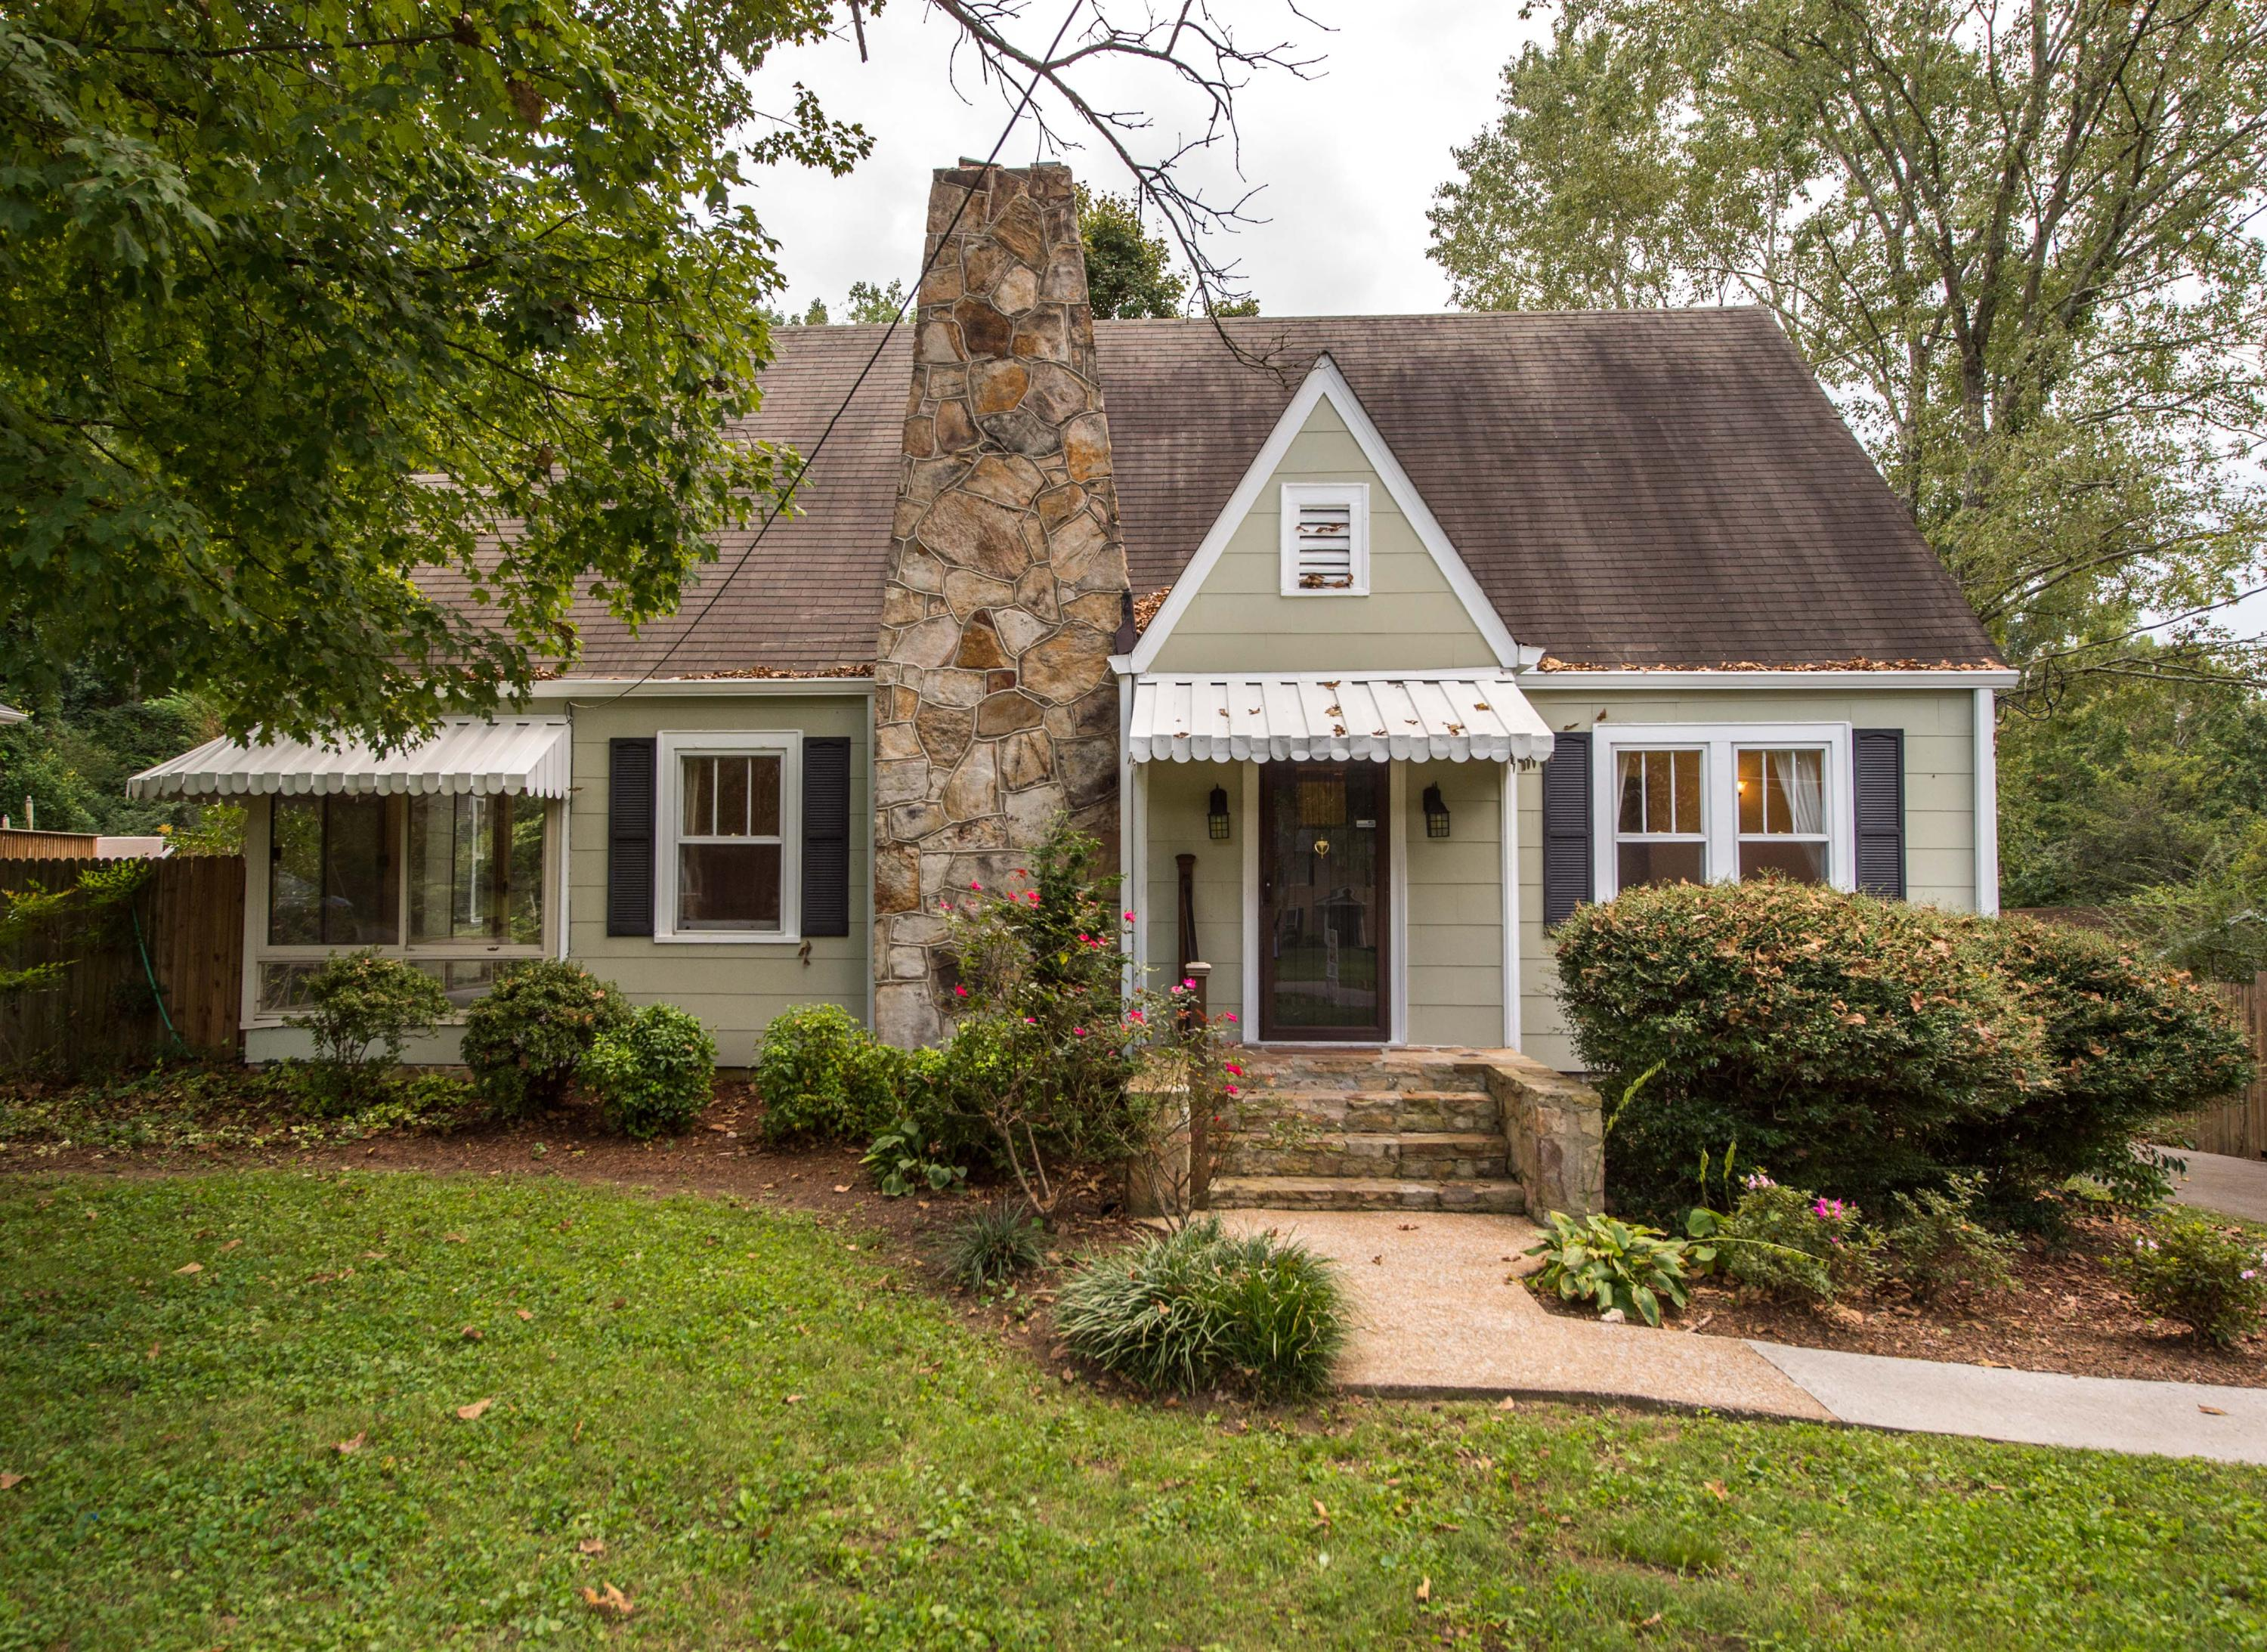 208 Culver St, Chattanooga, TN 37415